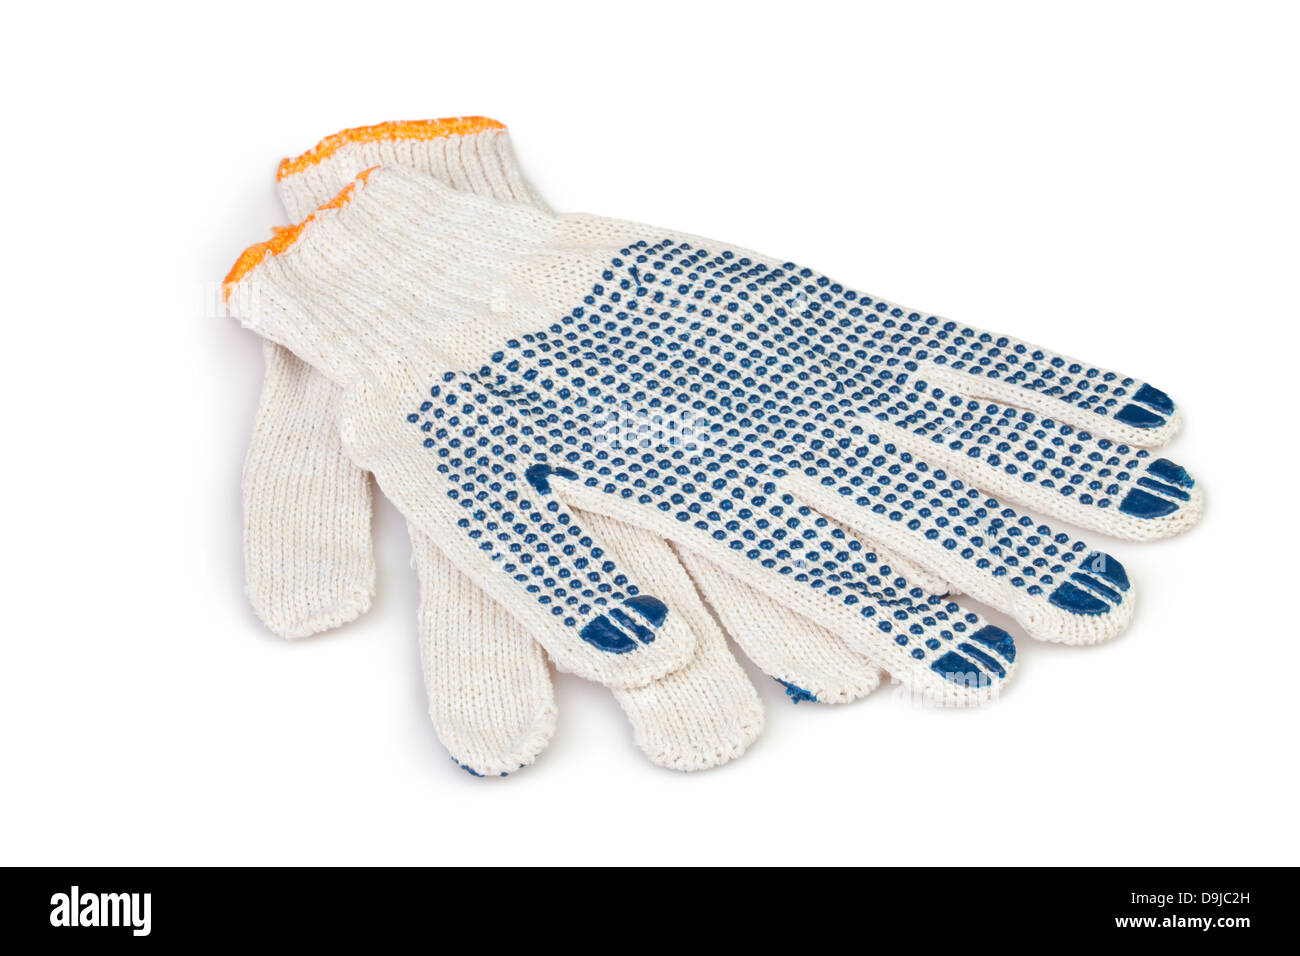 protective gloves working on white background - Stock Image